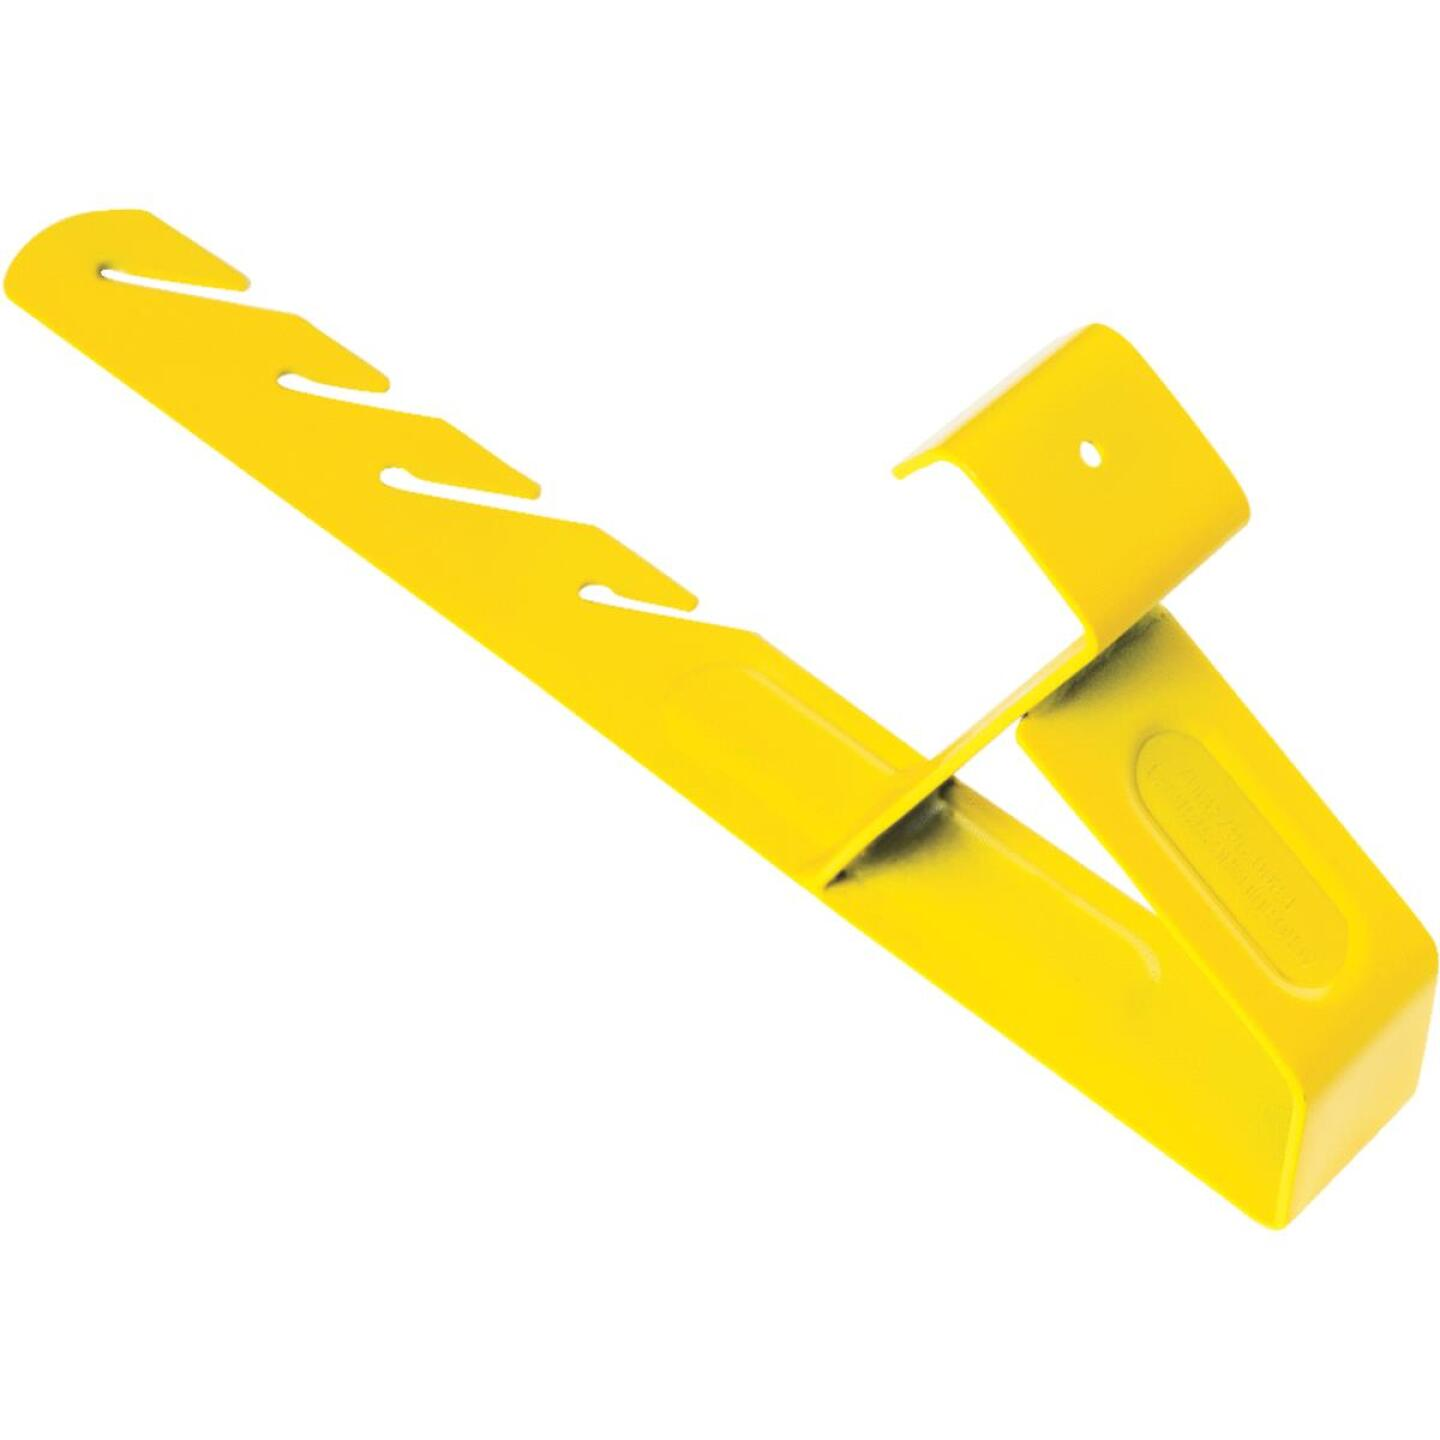 Acro 16 In. 2x6 60 Degree Fixed Roof Bracket Image 1